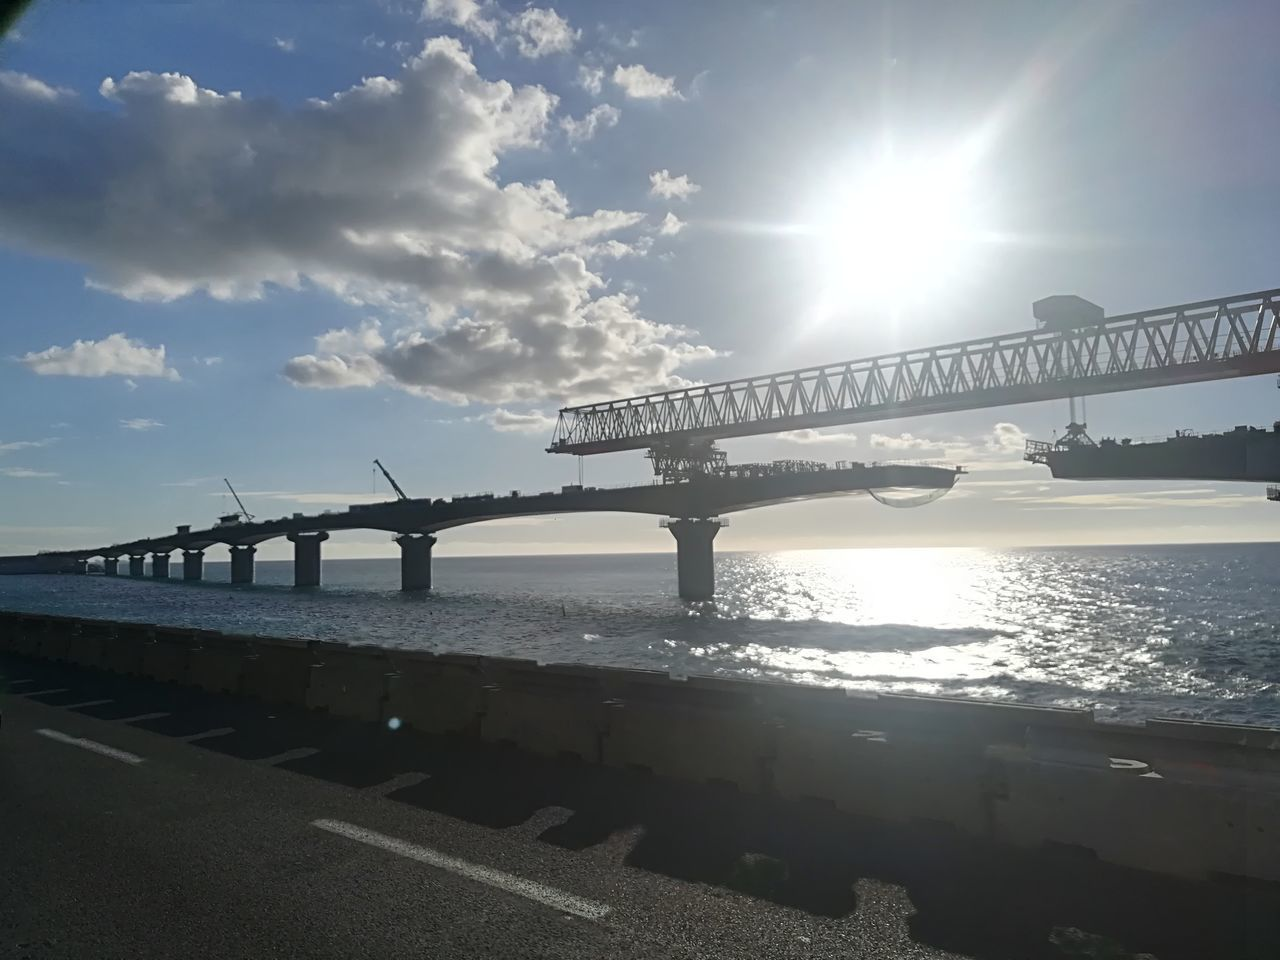 sun, lens flare, water, sunlight, sea, bridge - man made structure, sky, sunset, nature, built structure, outdoors, connection, scenics, architecture, silhouette, tranquility, travel destinations, beauty in nature, no people, cloud - sky, horizon over water, day